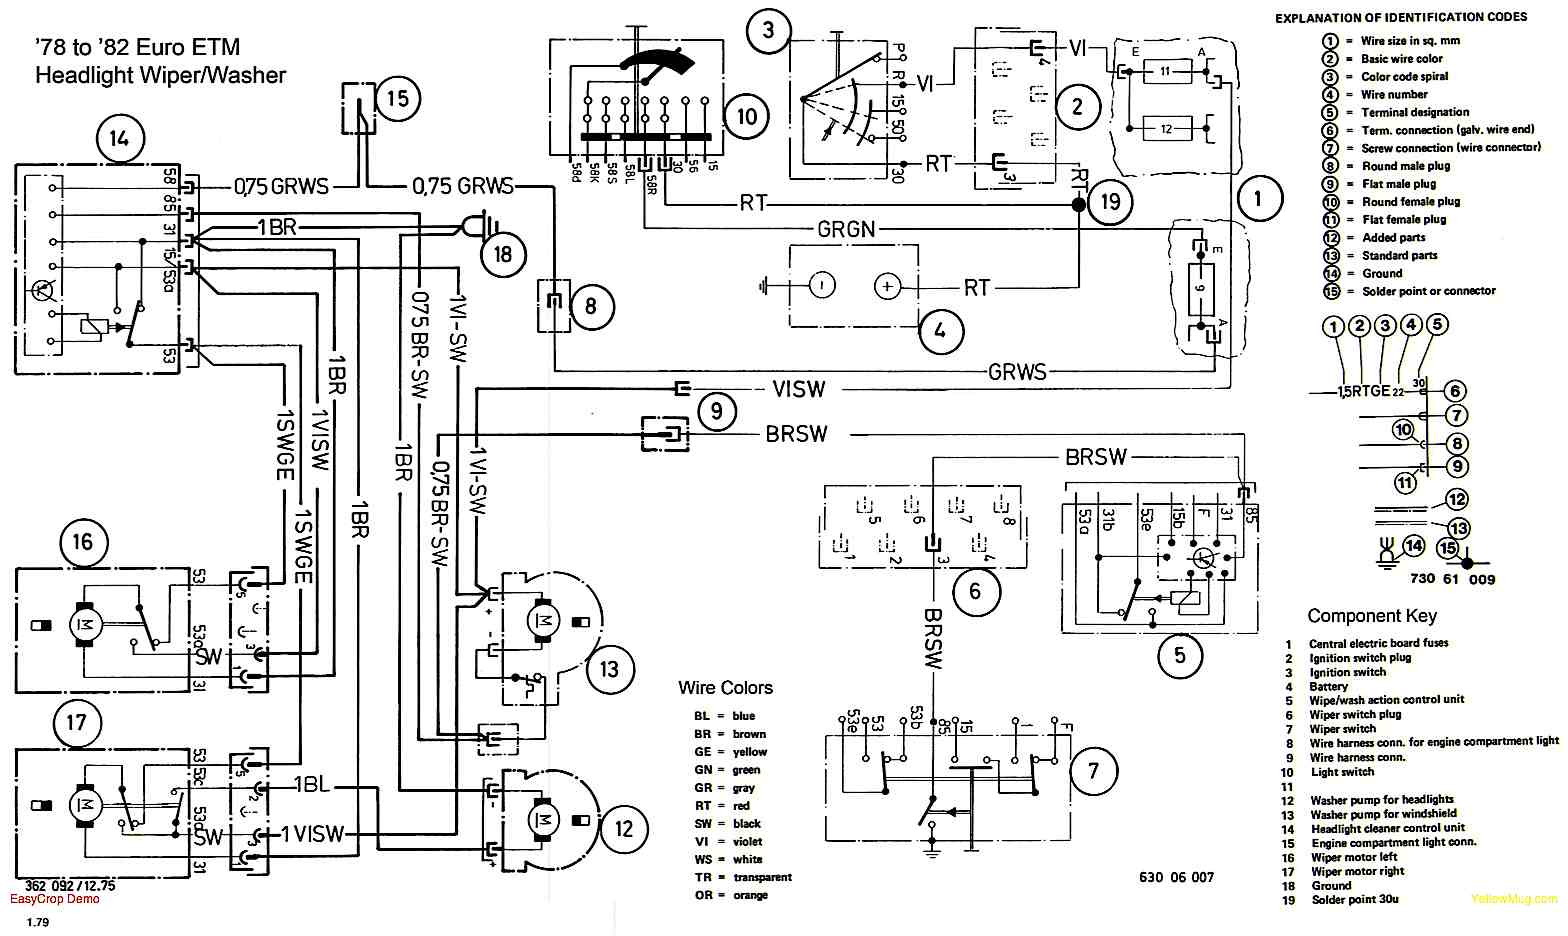 Wiring Diagram For E36 - Collection Of Wiring Diagram •